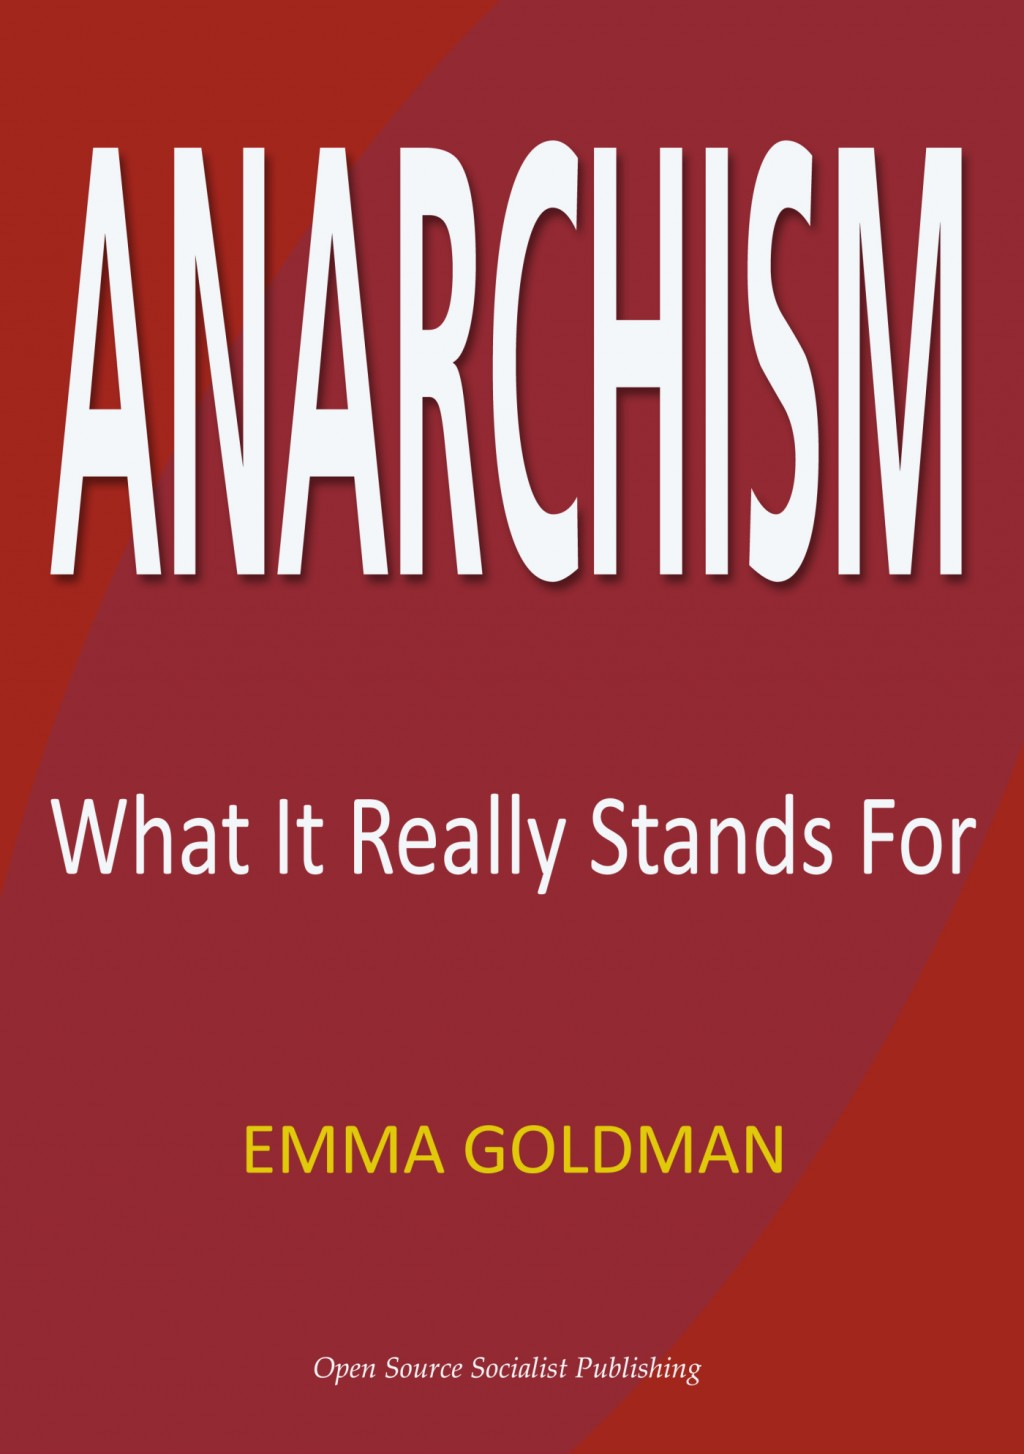 017 Essay Example Anarchism And Other Essays Anarch Wirsf Incredible Emma Goldman Summary Mla Citation Large